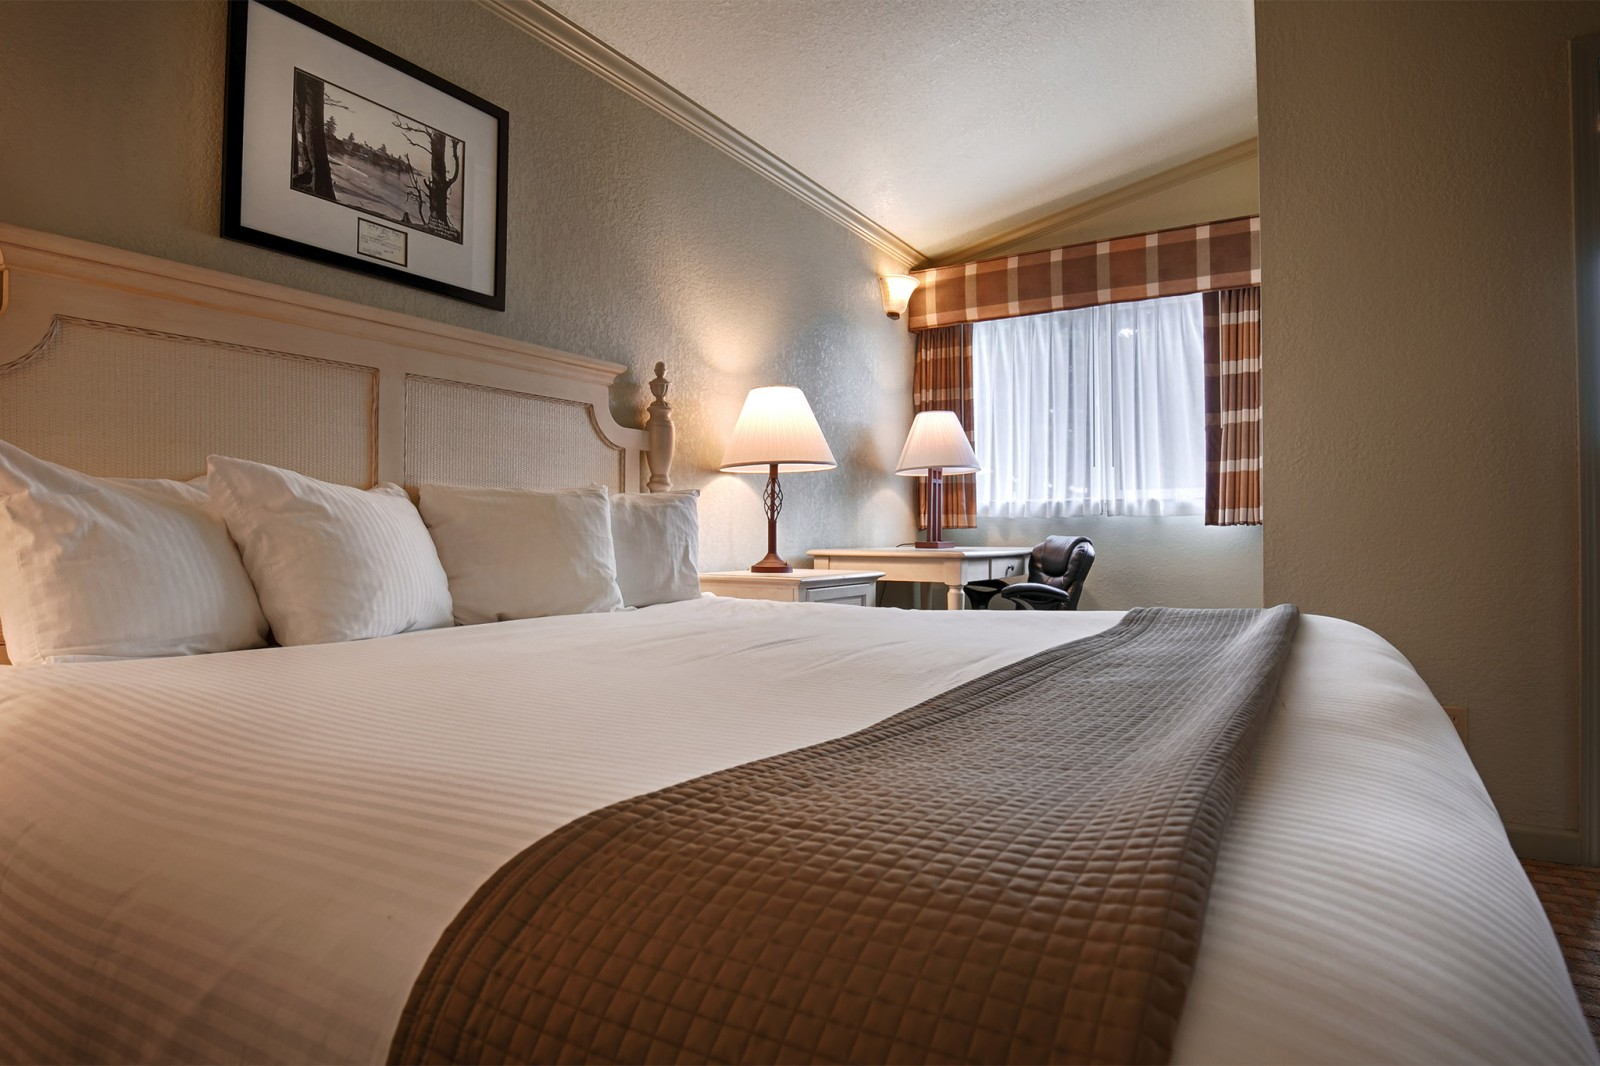 King Suite Accommodations in Bandon, Oregon